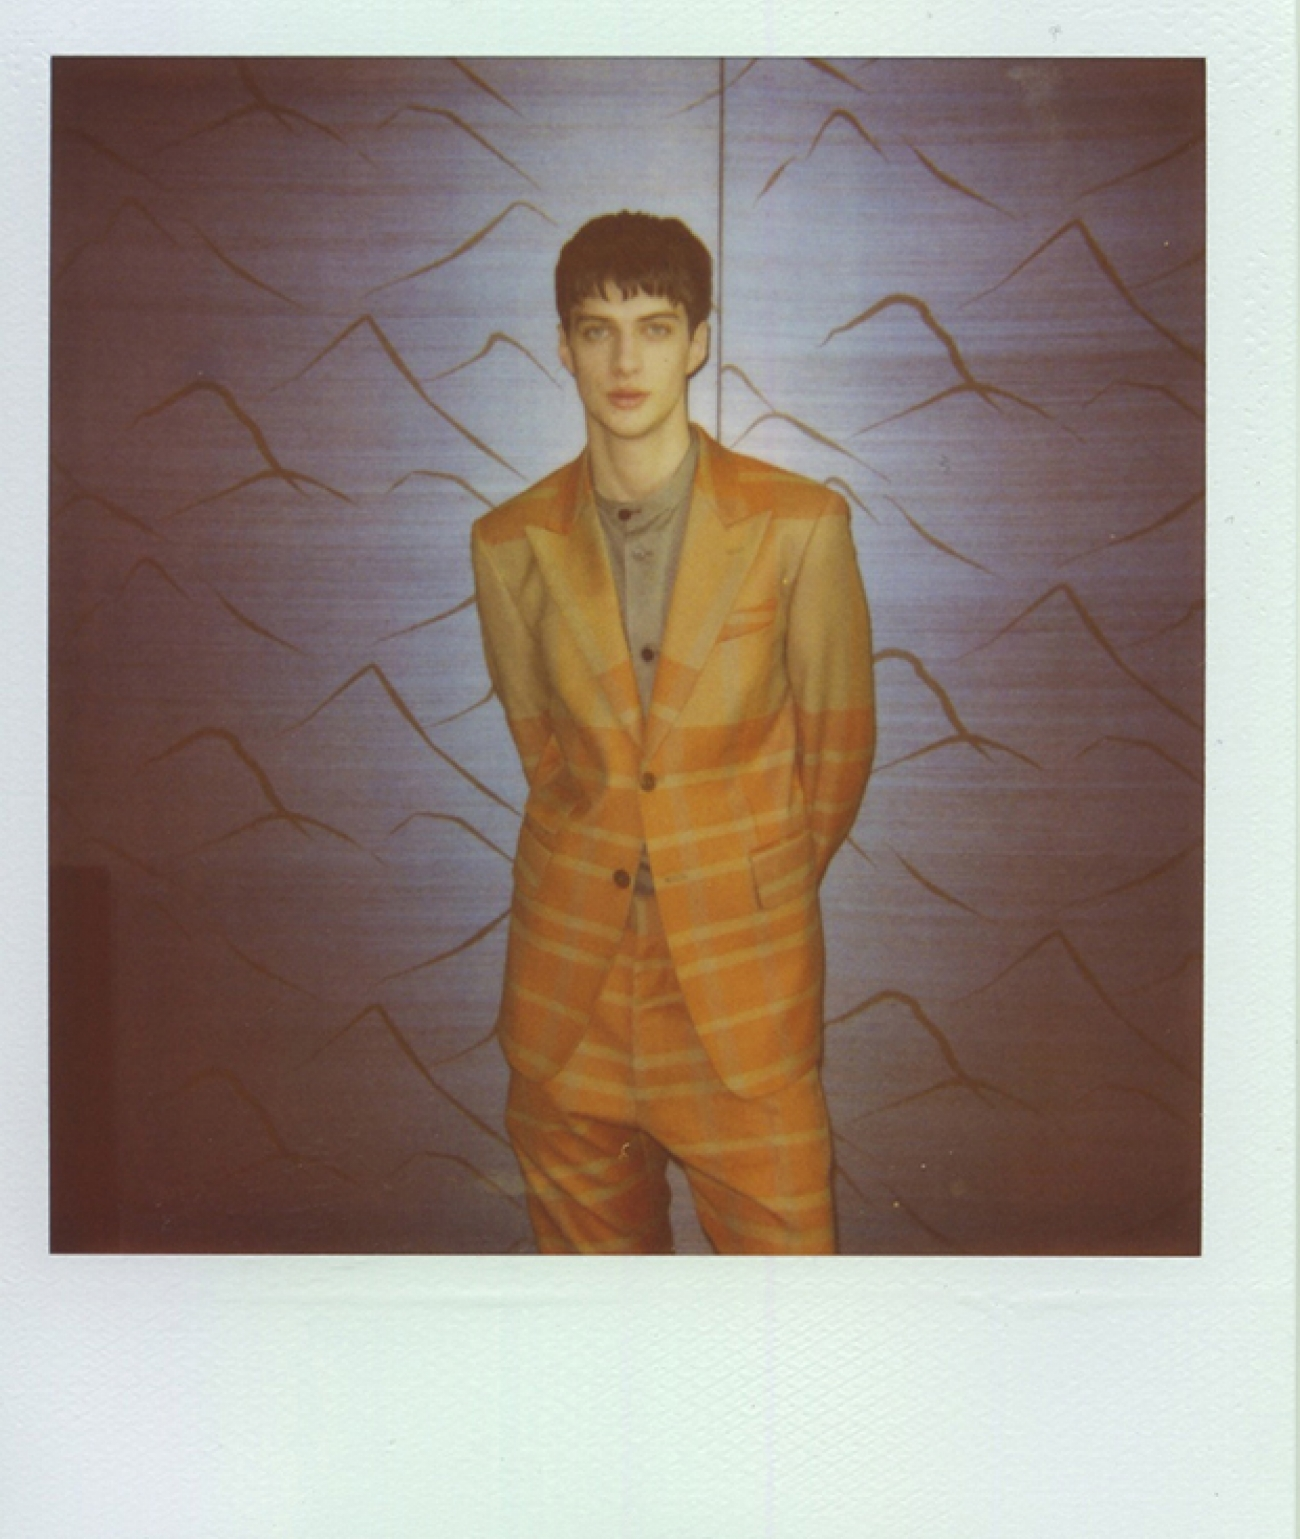 Matthew-Polaroid1